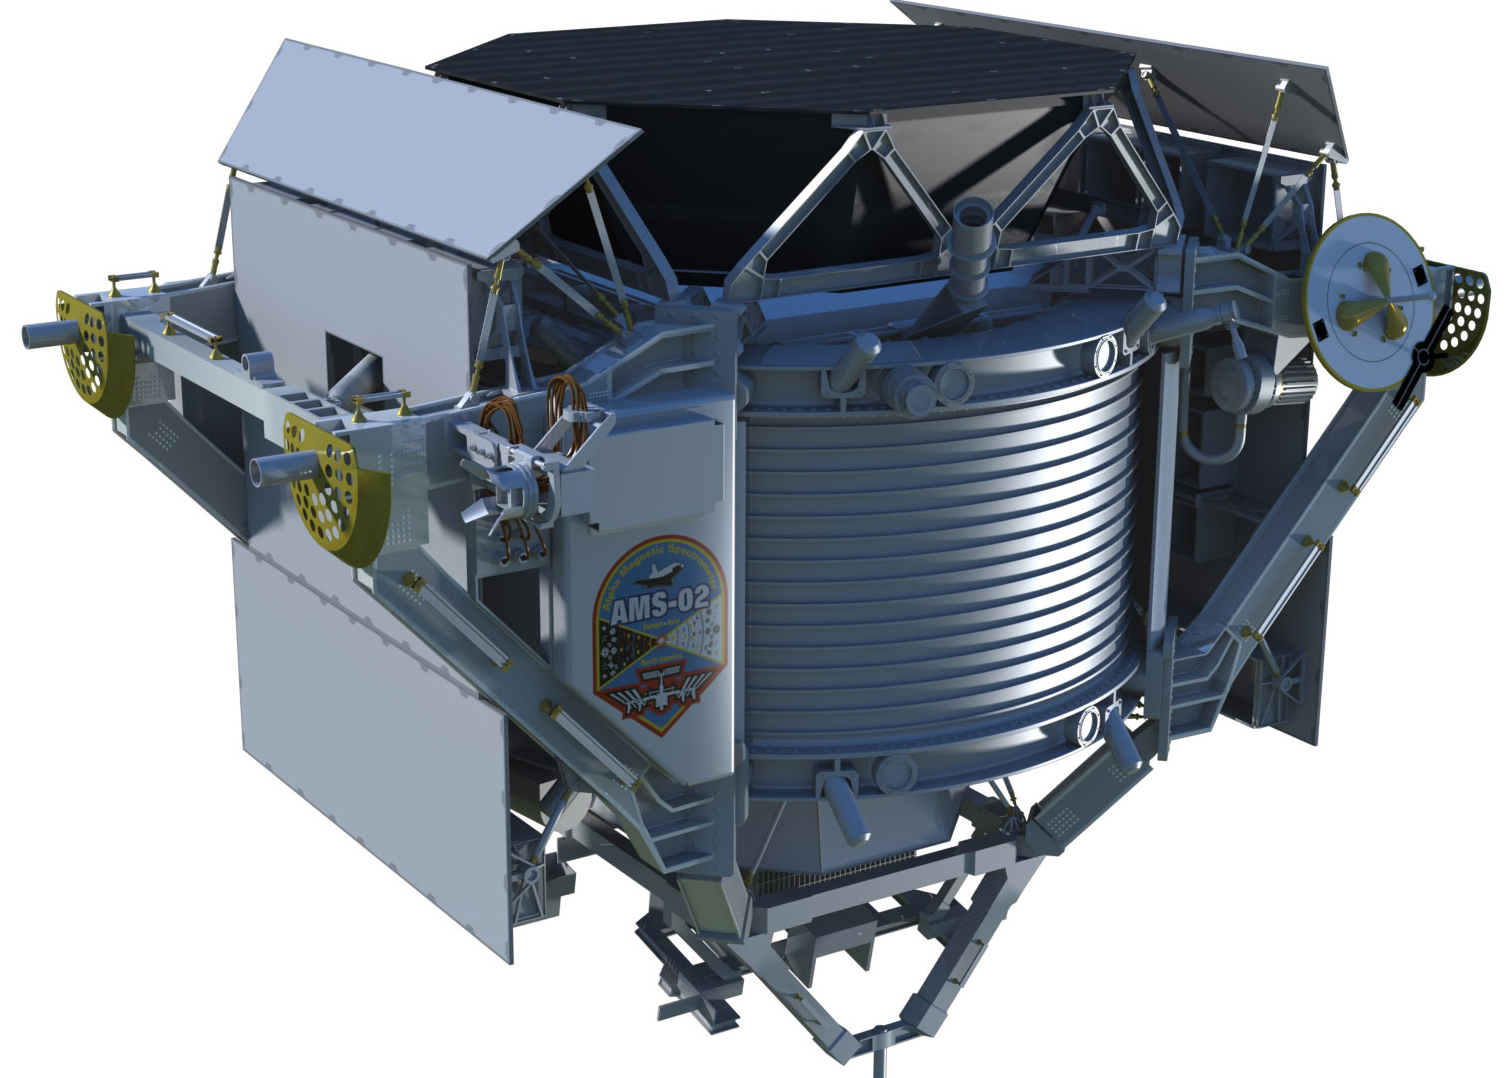 AMS instrument